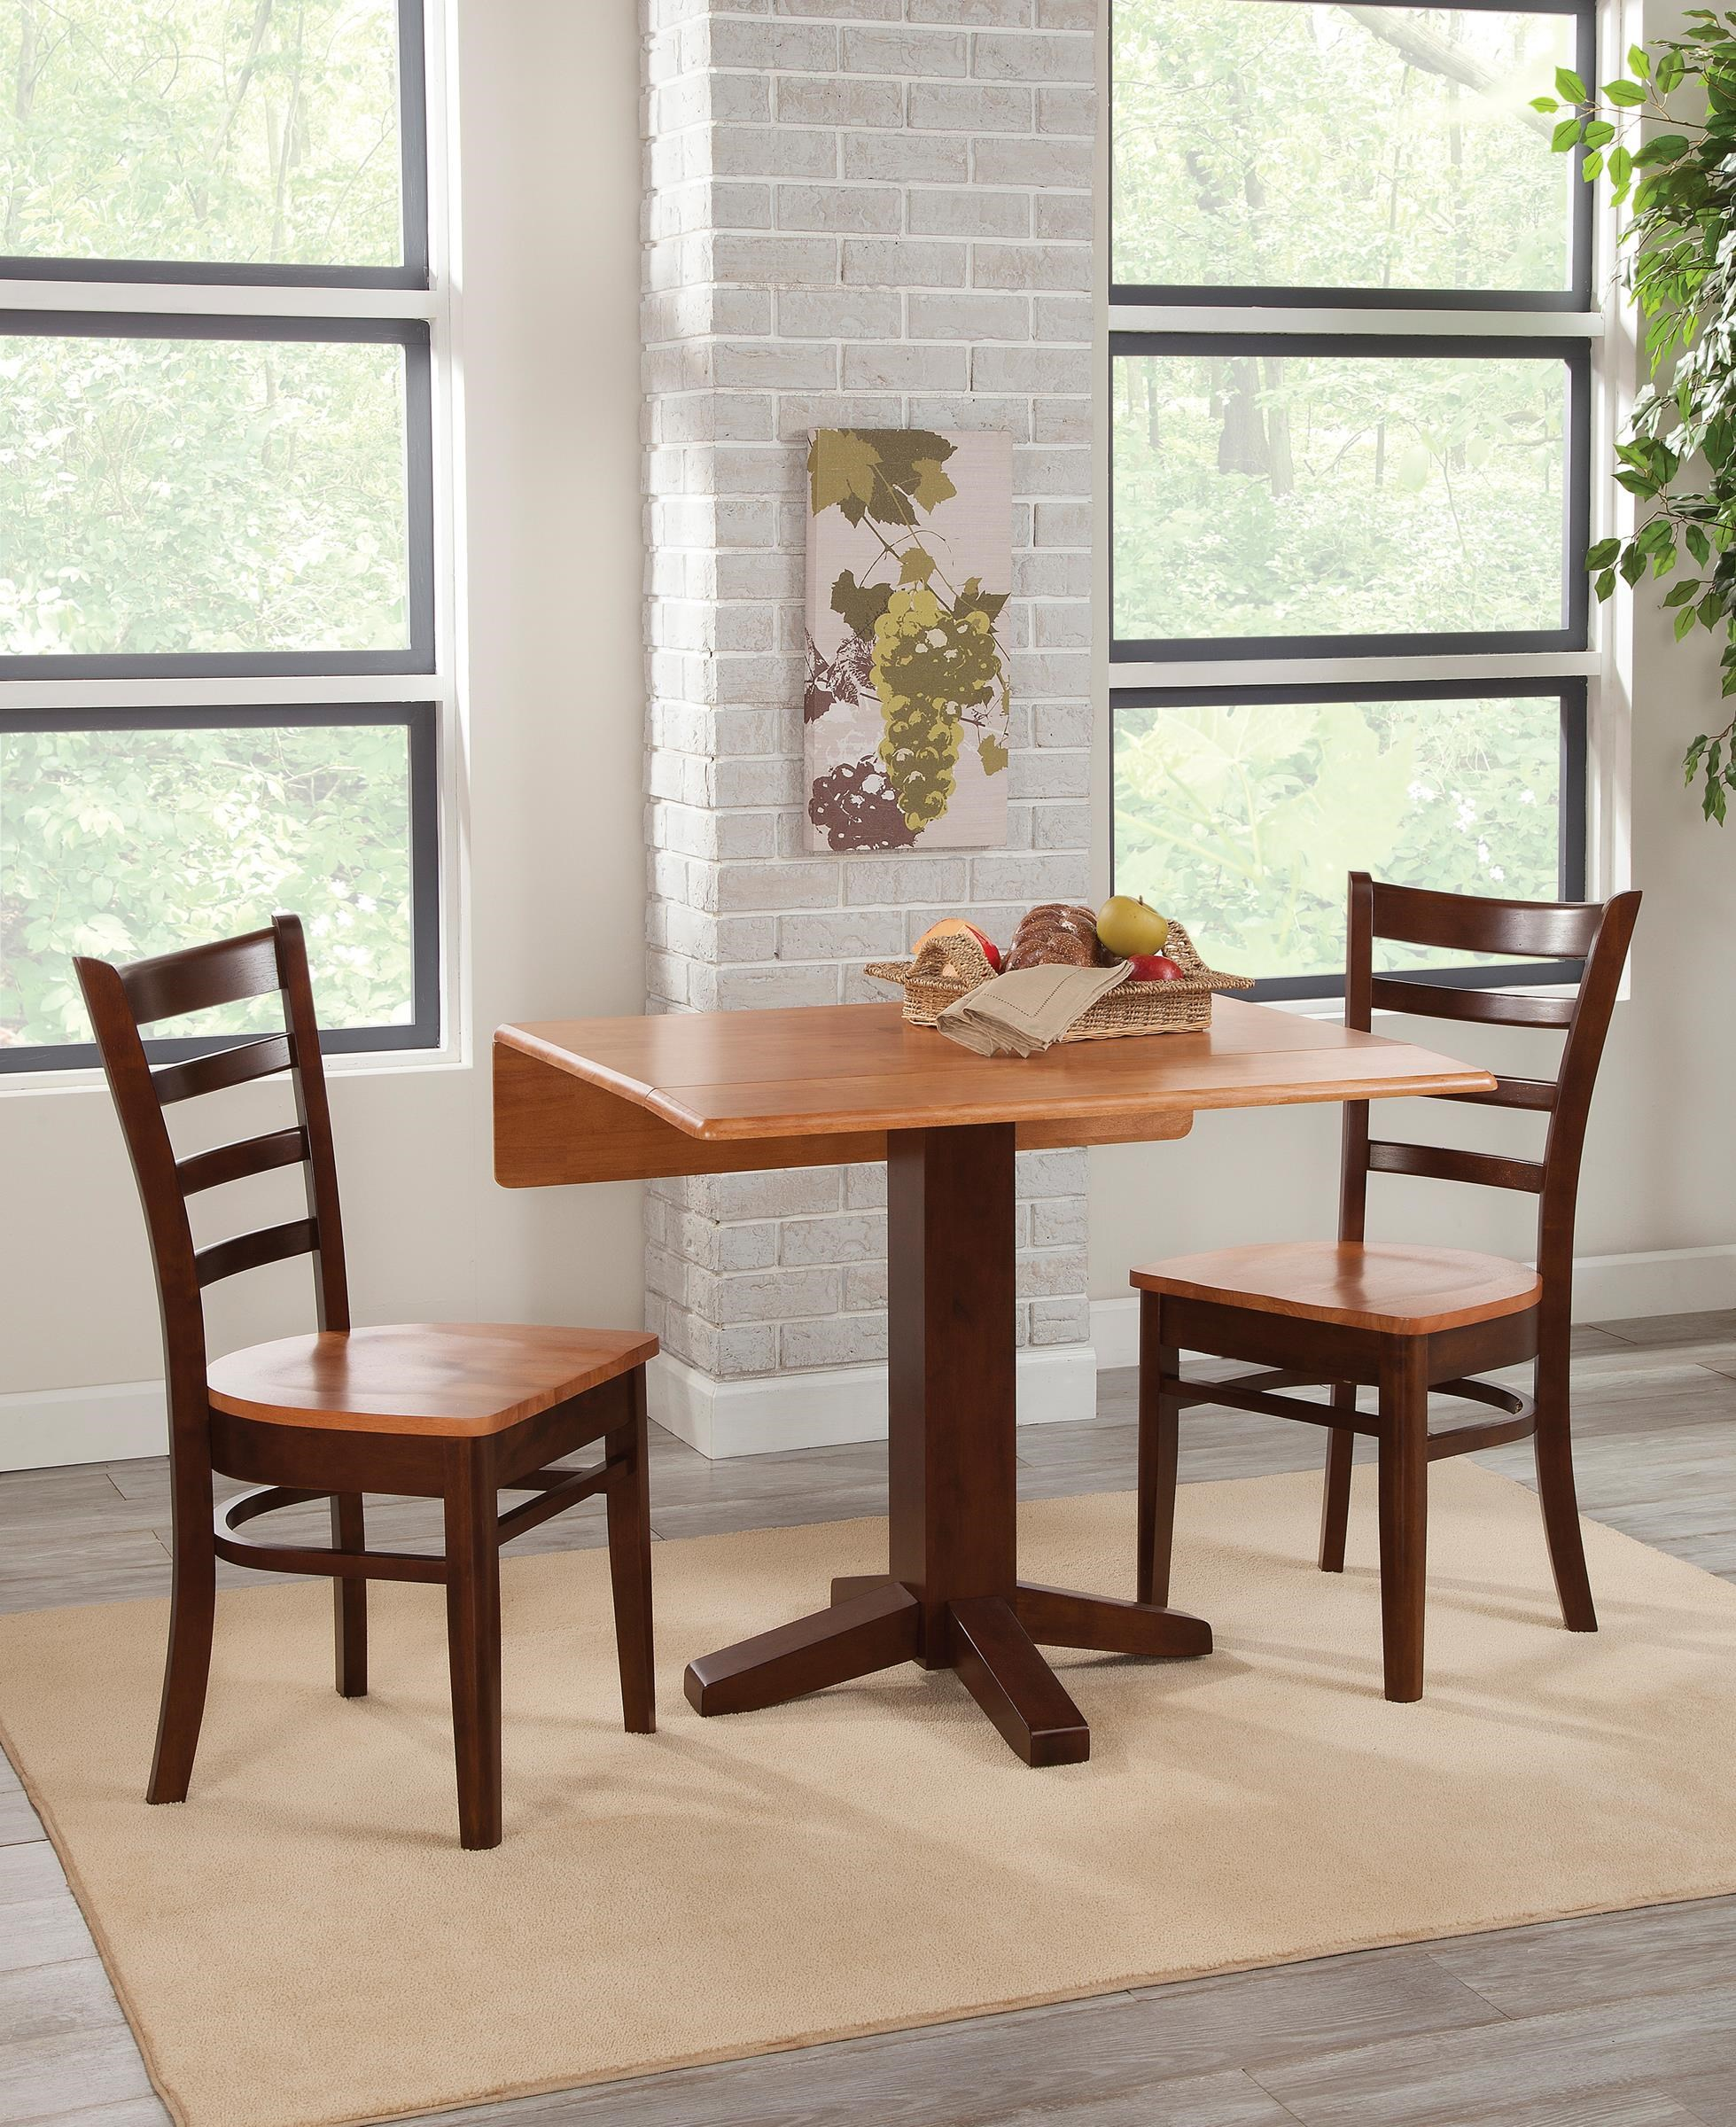 3 pc Dining Set--Table and 2 Side Chairs by John Thomas | Wolf and ...